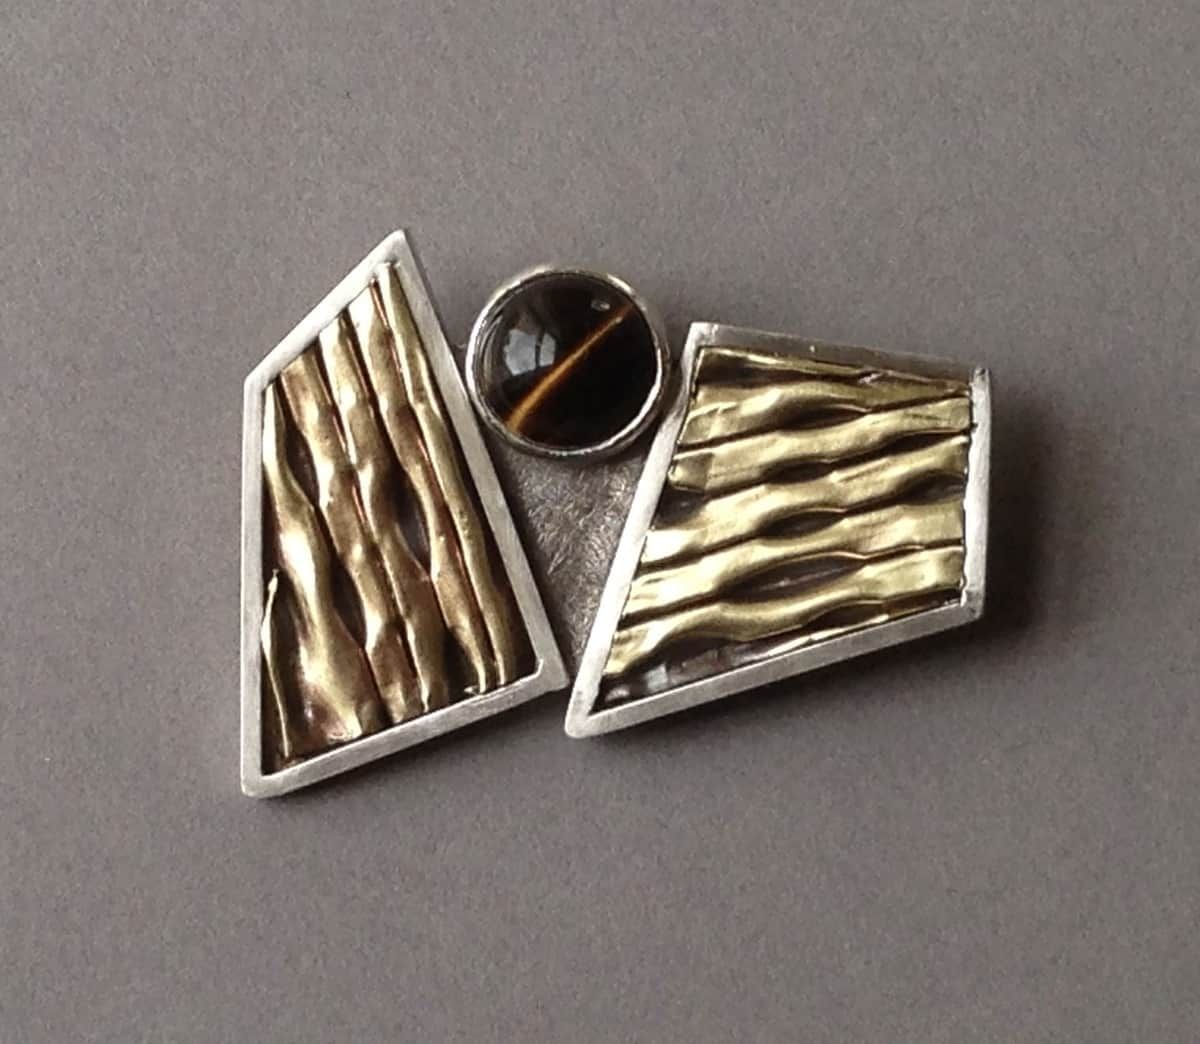 2 Polygon Pin w/ Brown Tigereye, Item #P0620